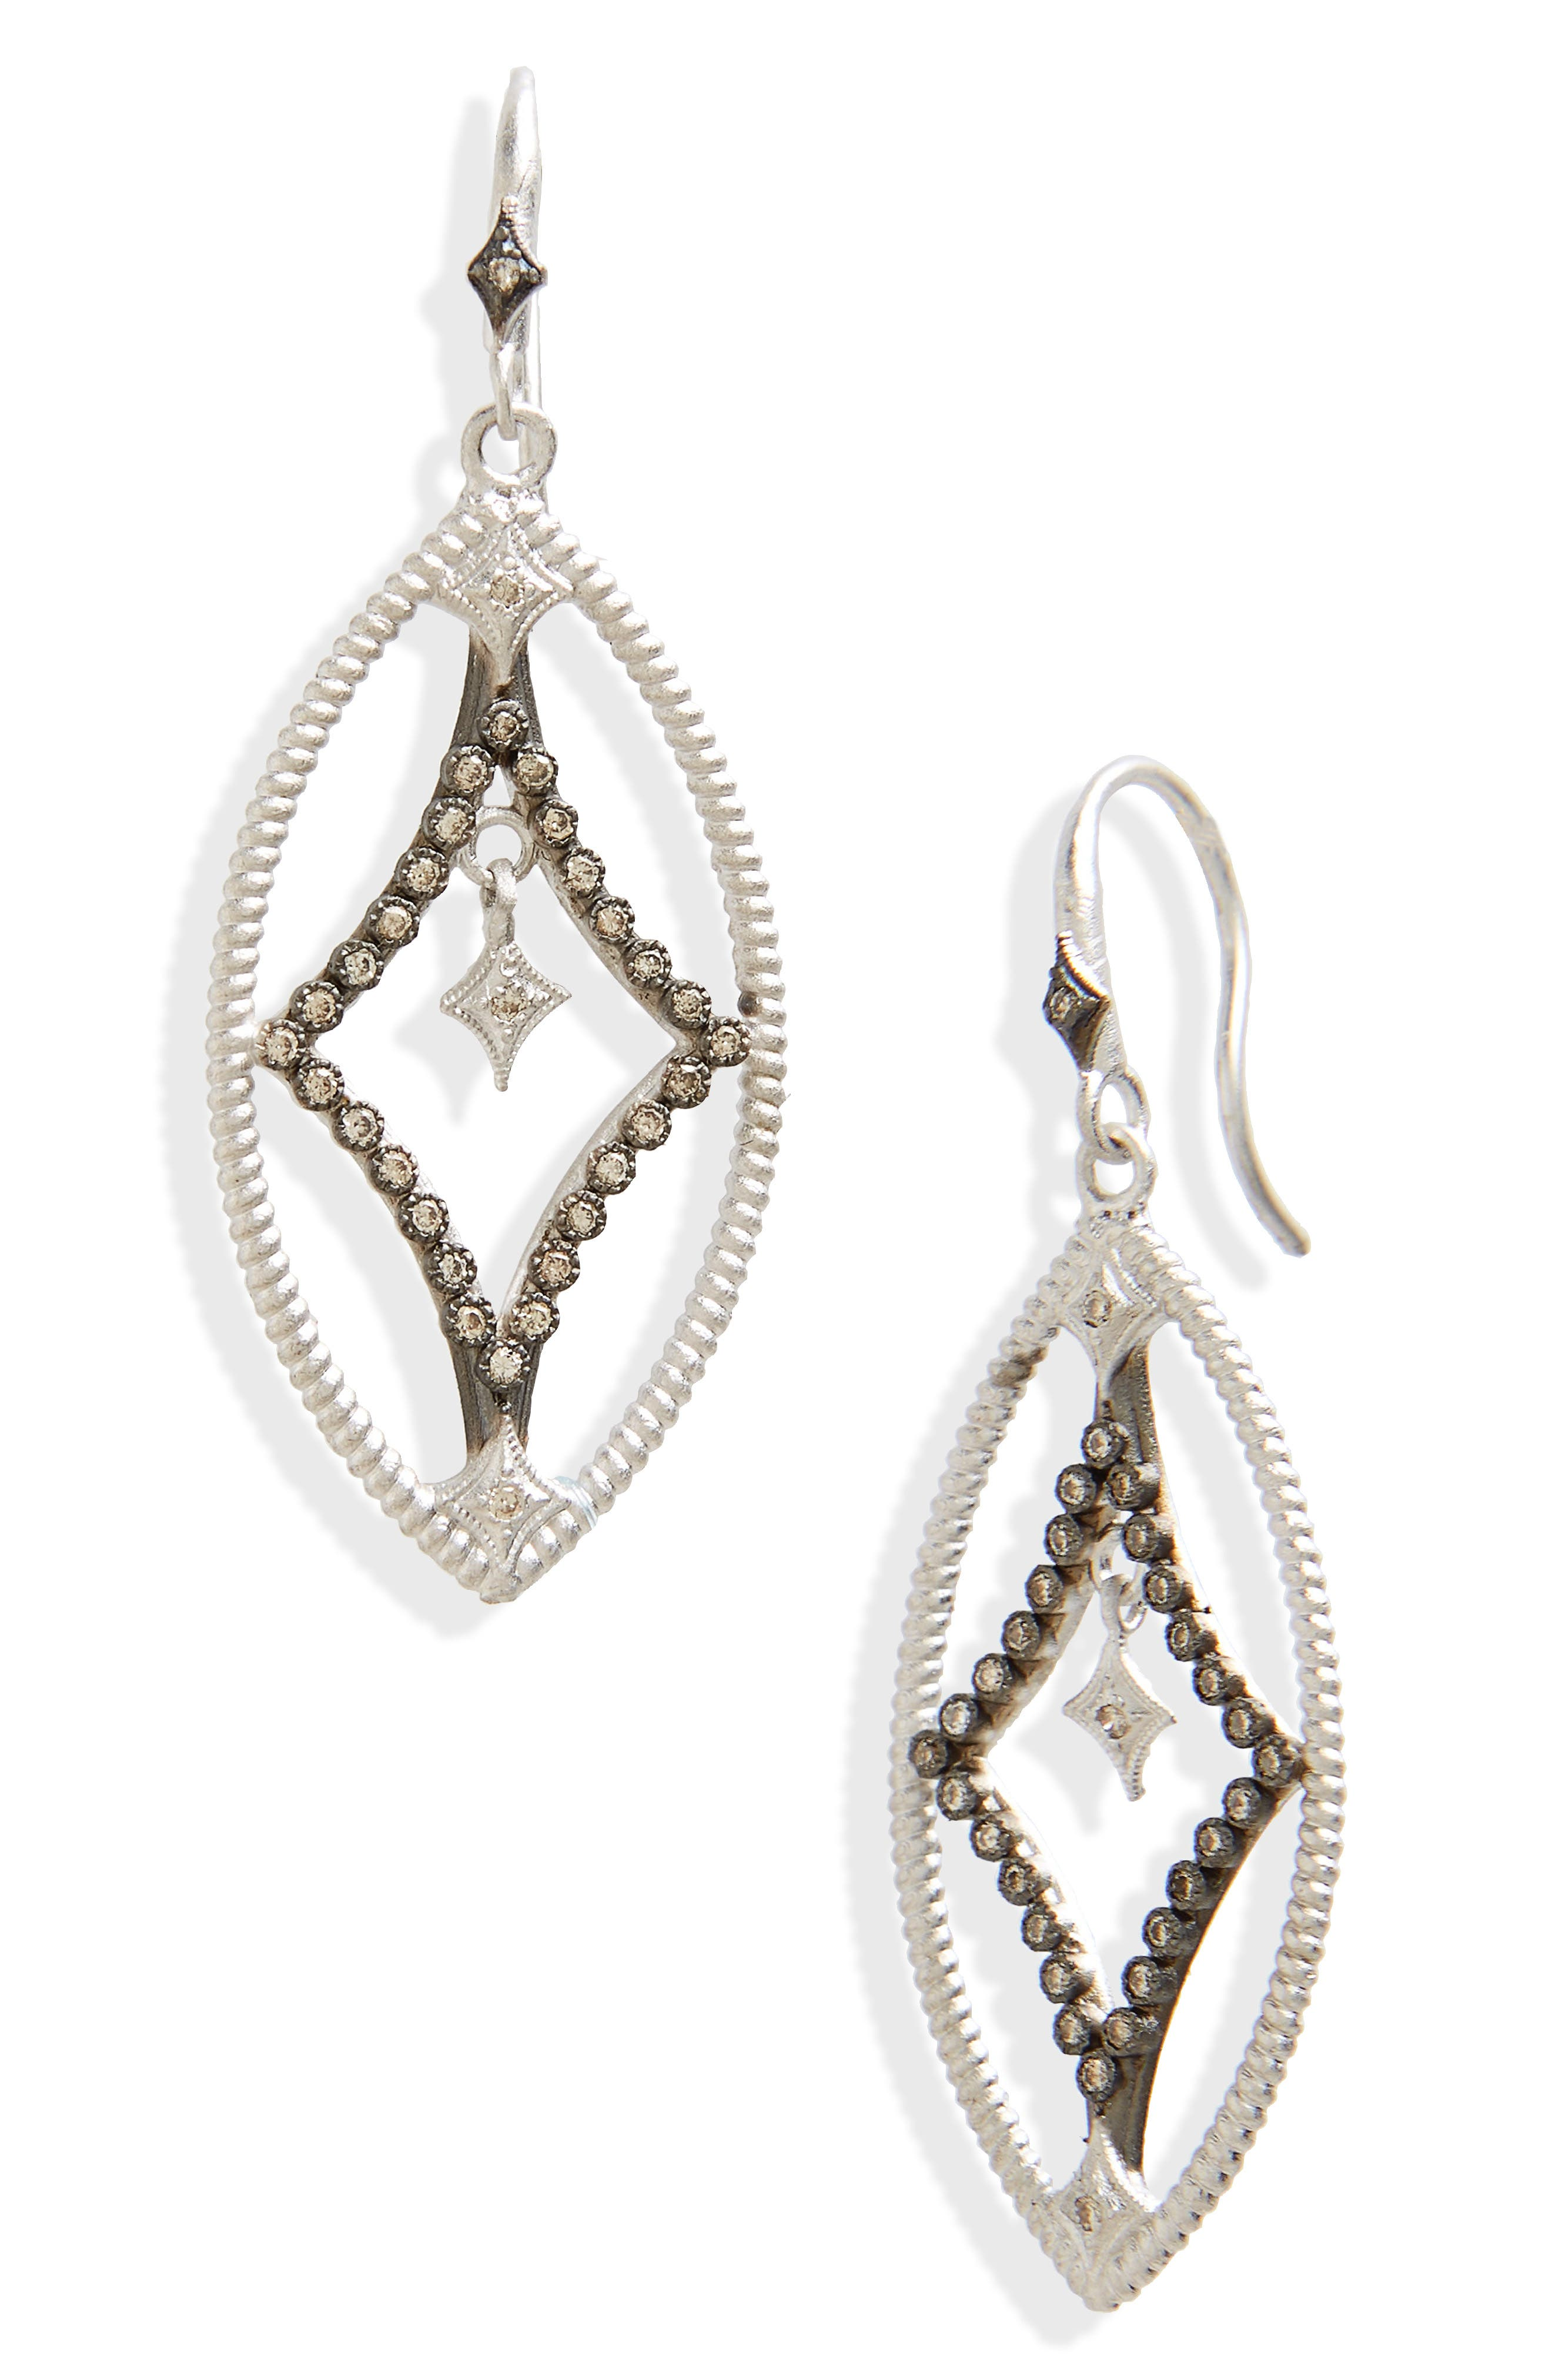 New World Crivelli Drop Earrings,                             Main thumbnail 1, color,                             SILVER